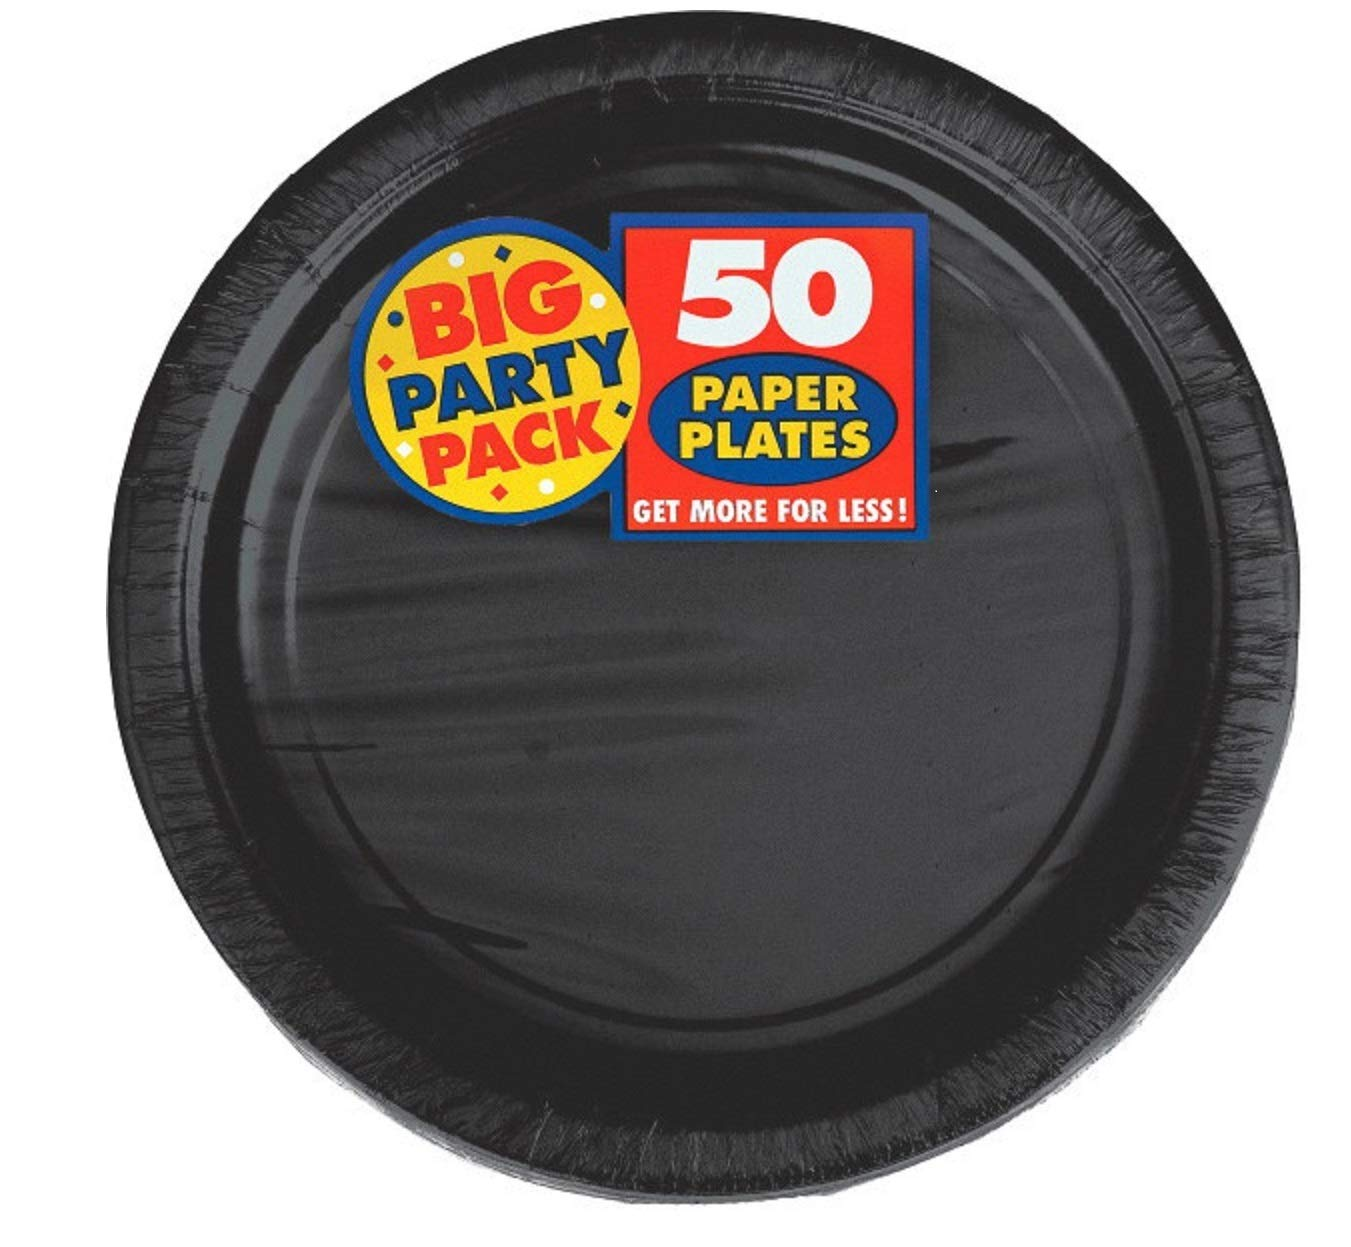 Amscan Big Party Supplies Pack Black Color Bundle set for 50 Guests 9'' Dinner Paper Plates, 7'' Luncheon Paper Plates and, 2-ply Luncheon Napkins with a Complementary Recipe Card by Delexiana (Image #2)